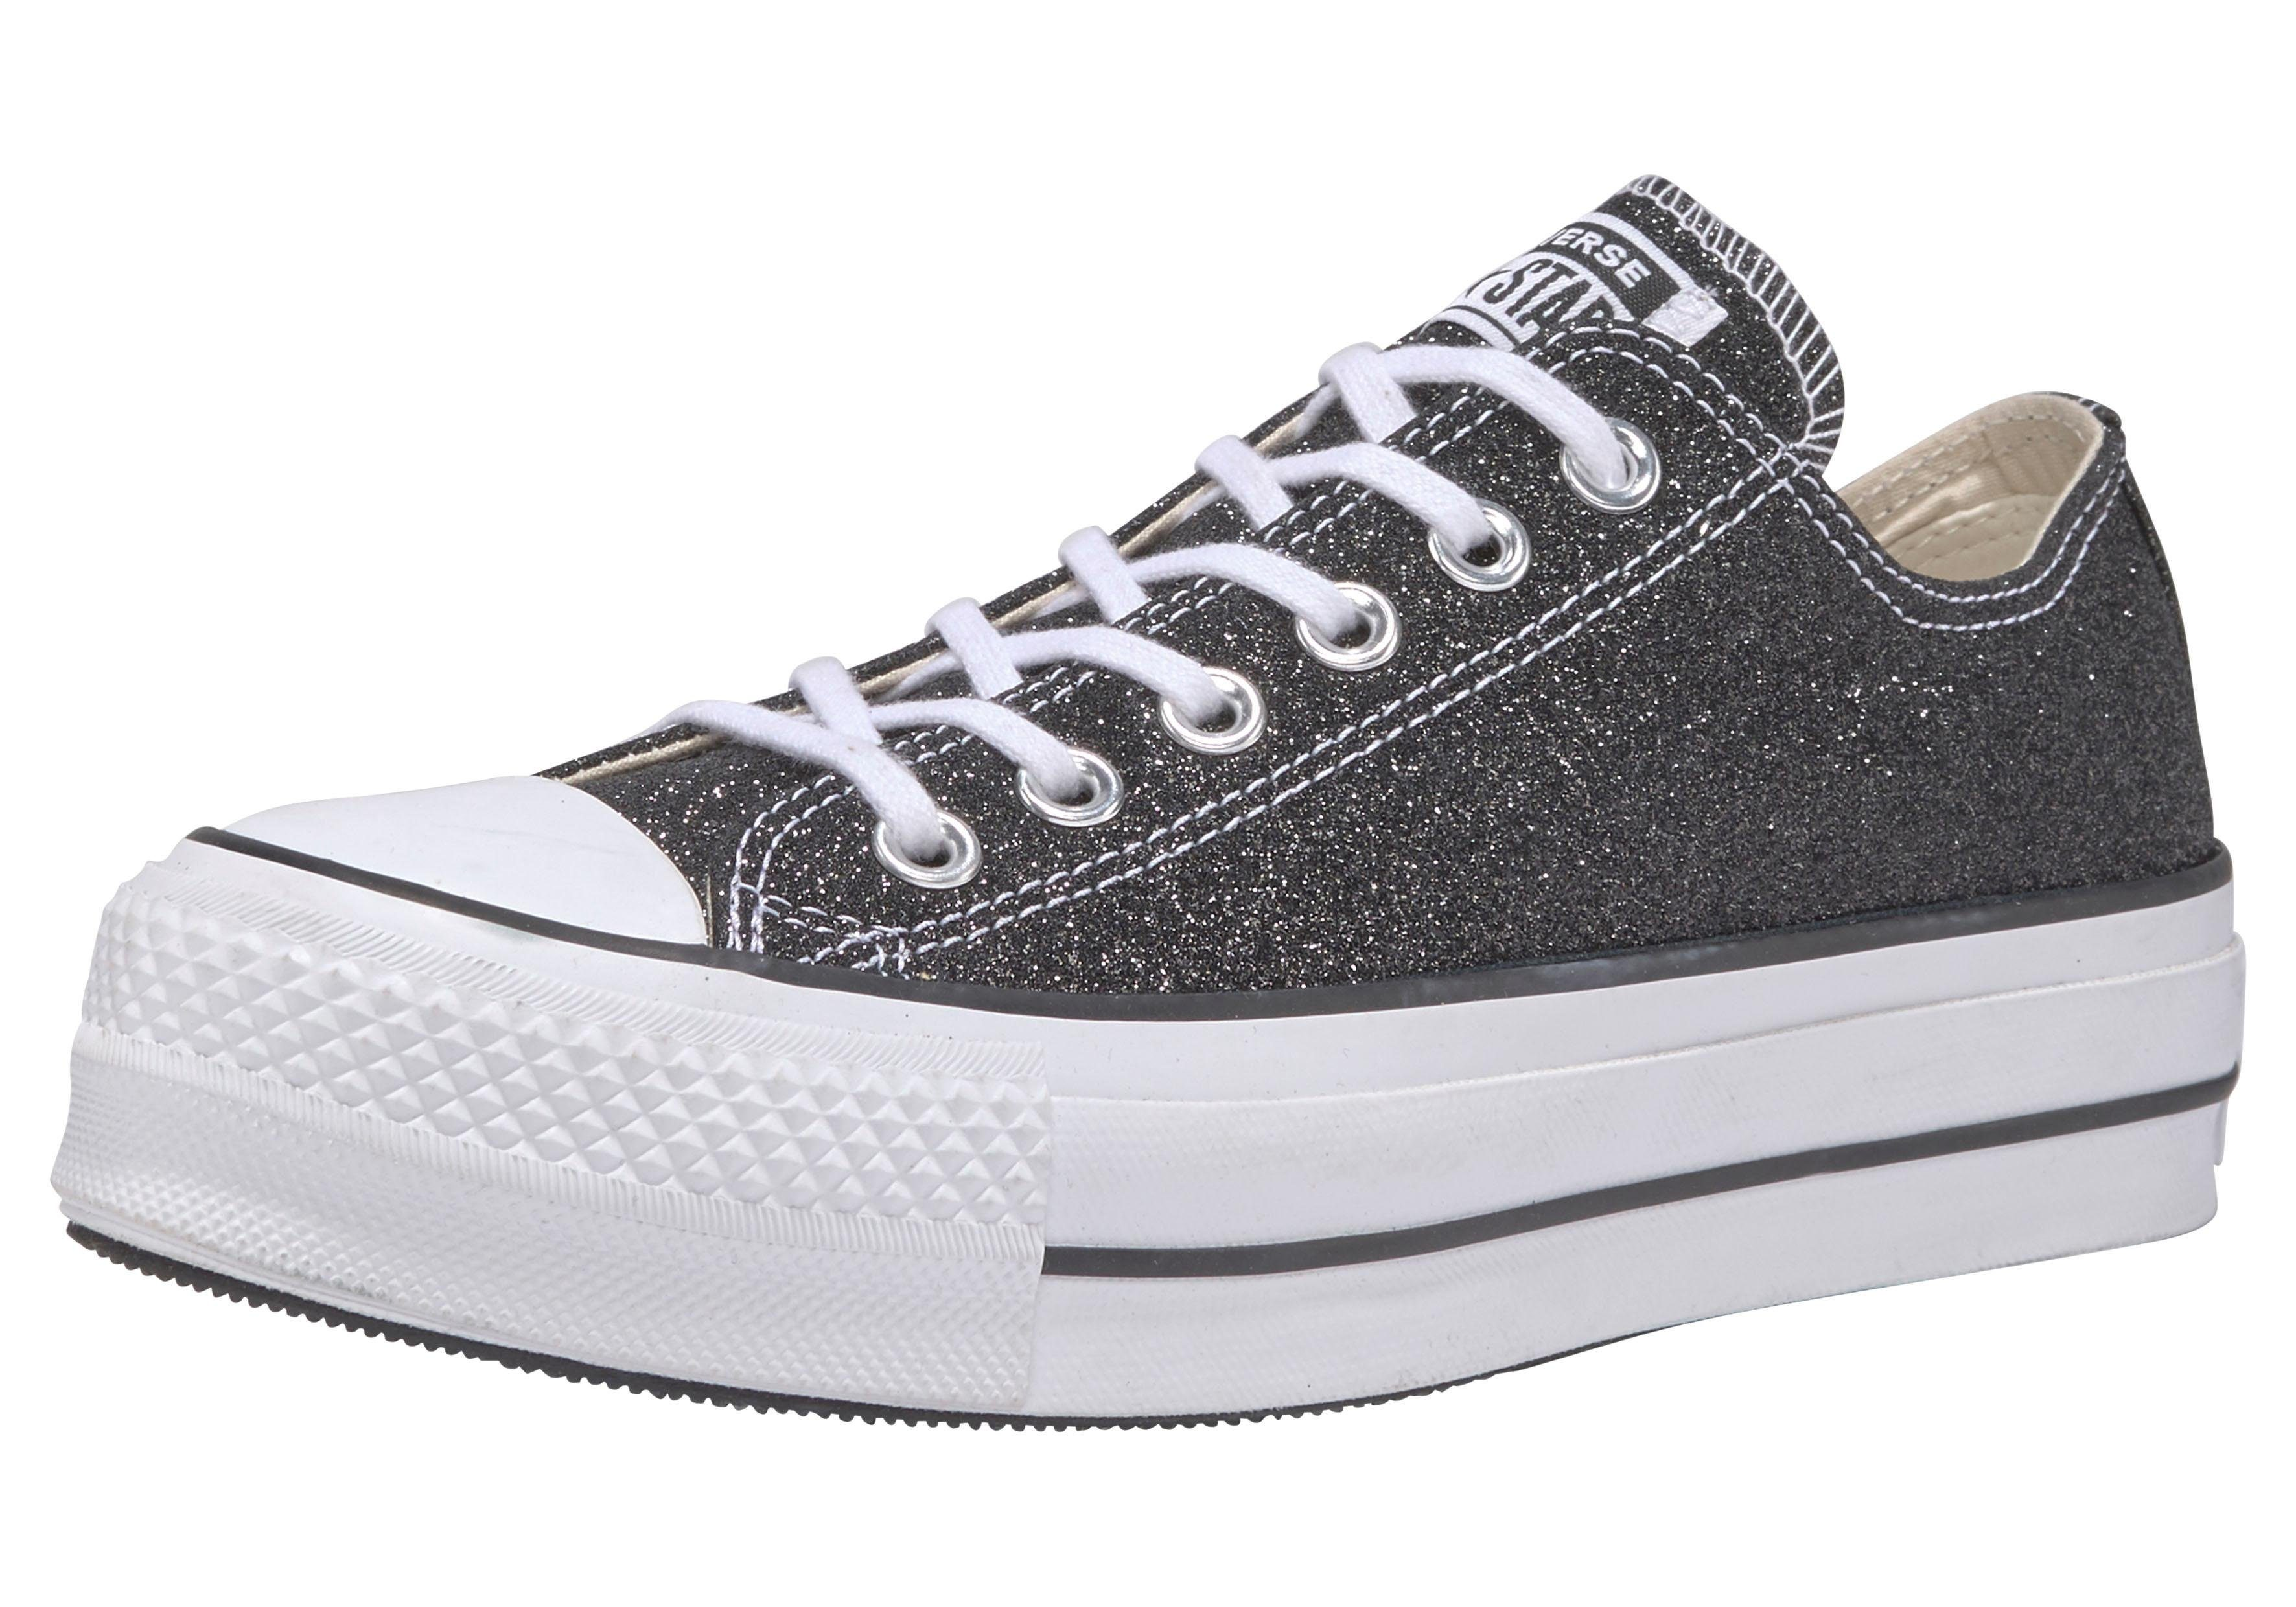 Converse »Chuck Taylor All Star Lift Ox Spark Pack« Plateausneaker online kaufen | OTTO